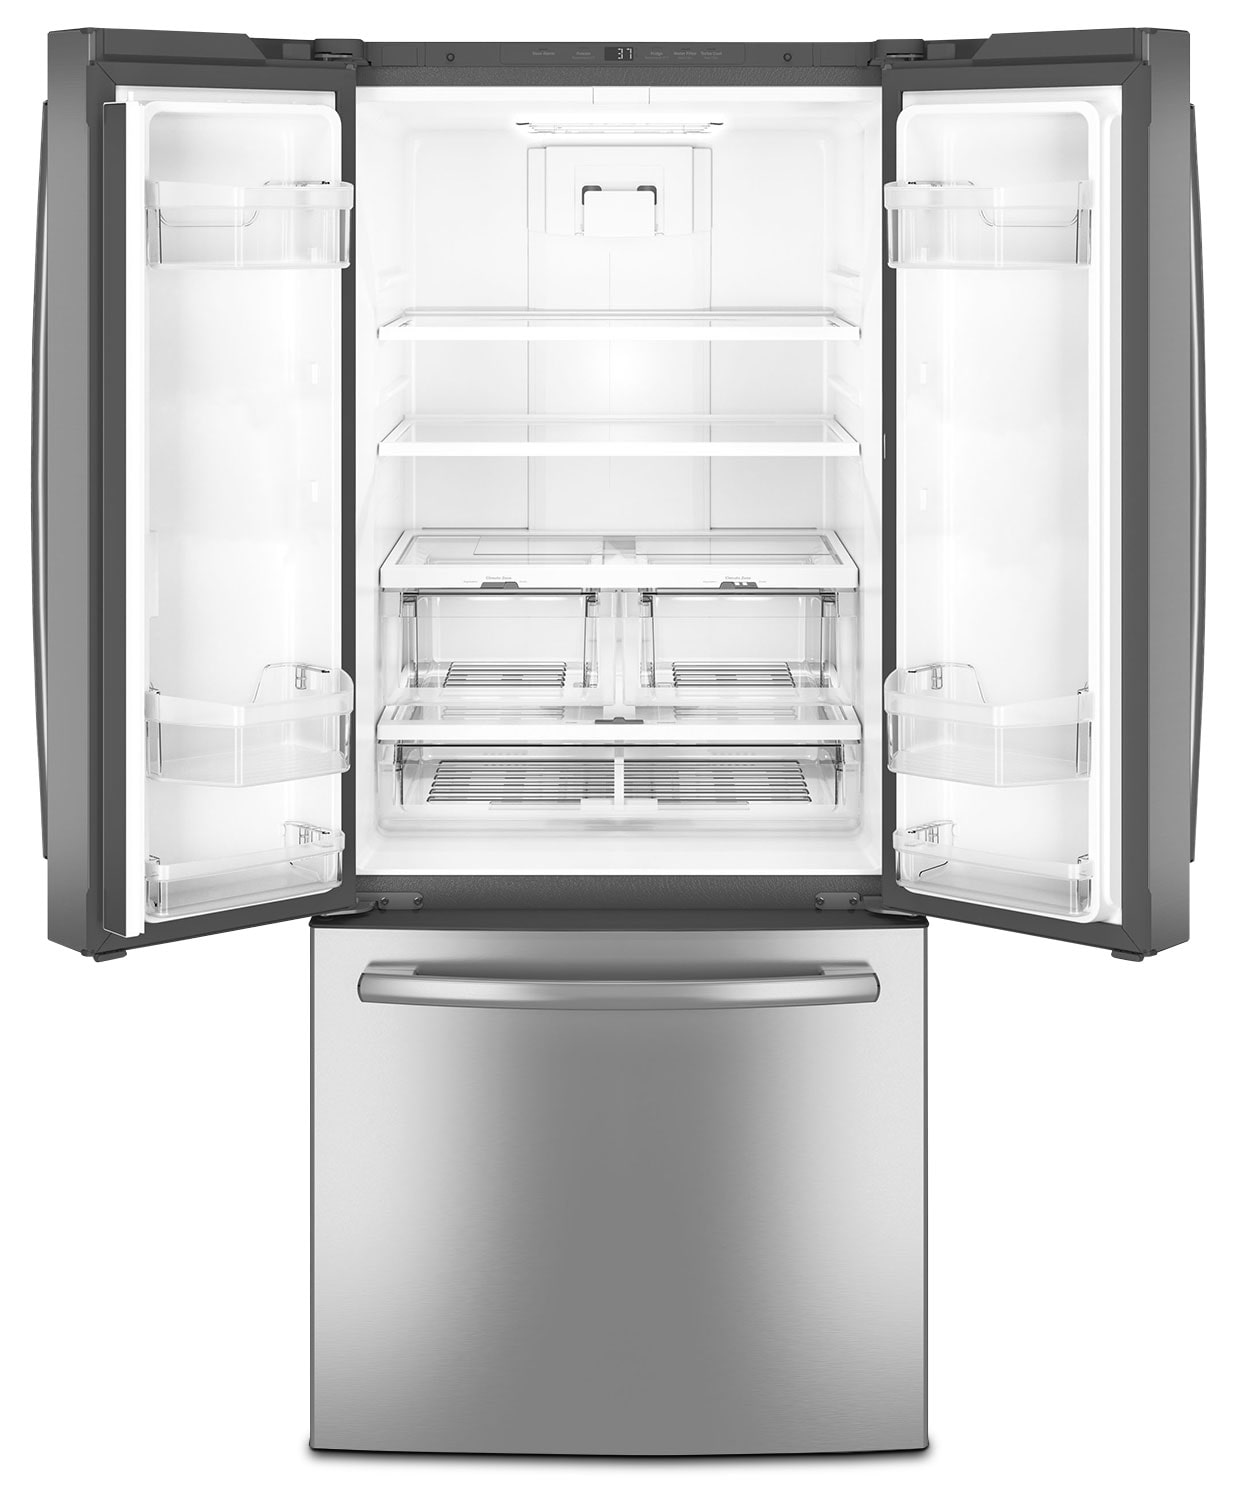 20 Cu Ft French Door Refrigerator: GE 20.8 Cu. Ft. French-Door Refrigerator – GNE21DSKSS